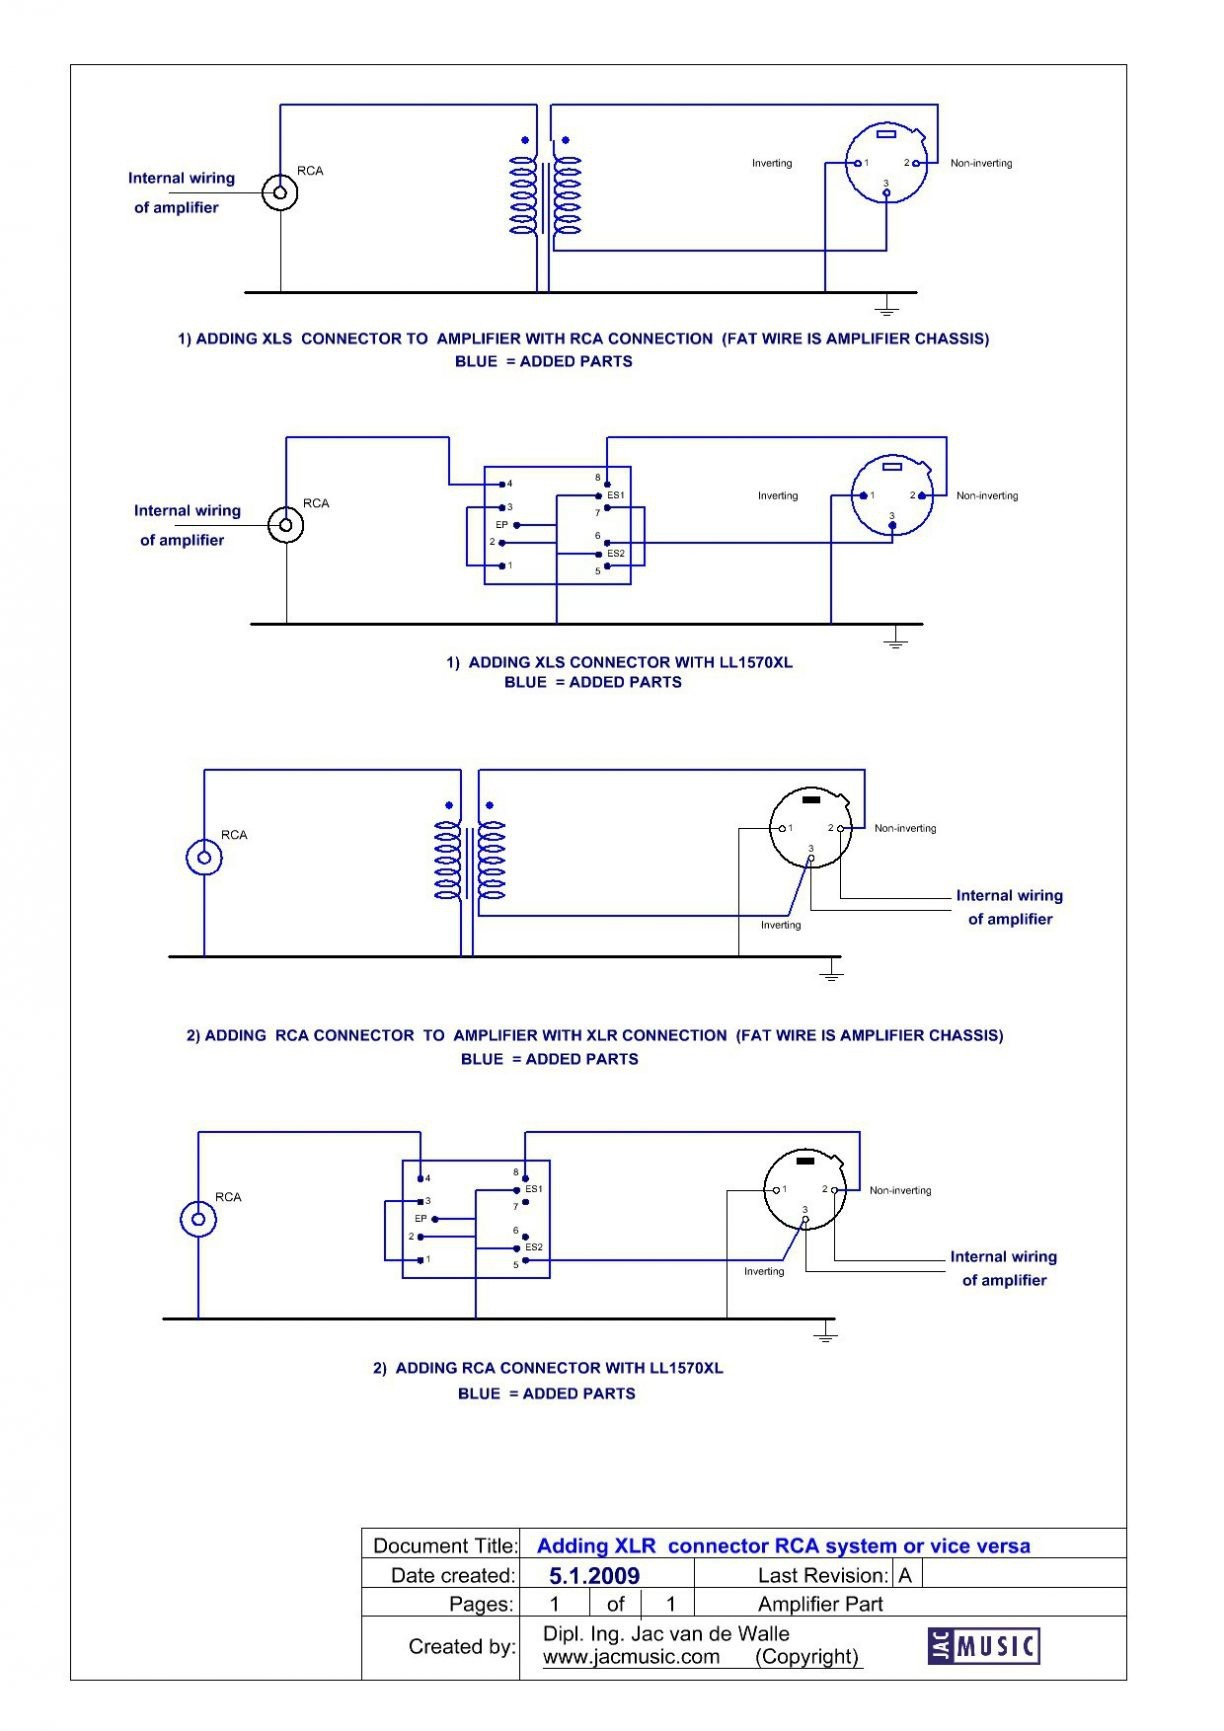 35mm Jack Wiring Diagram Inspirational Image How 2 5mm 3 5 Mm Unique Cool Rca Plug Ideas Electrical Circuit